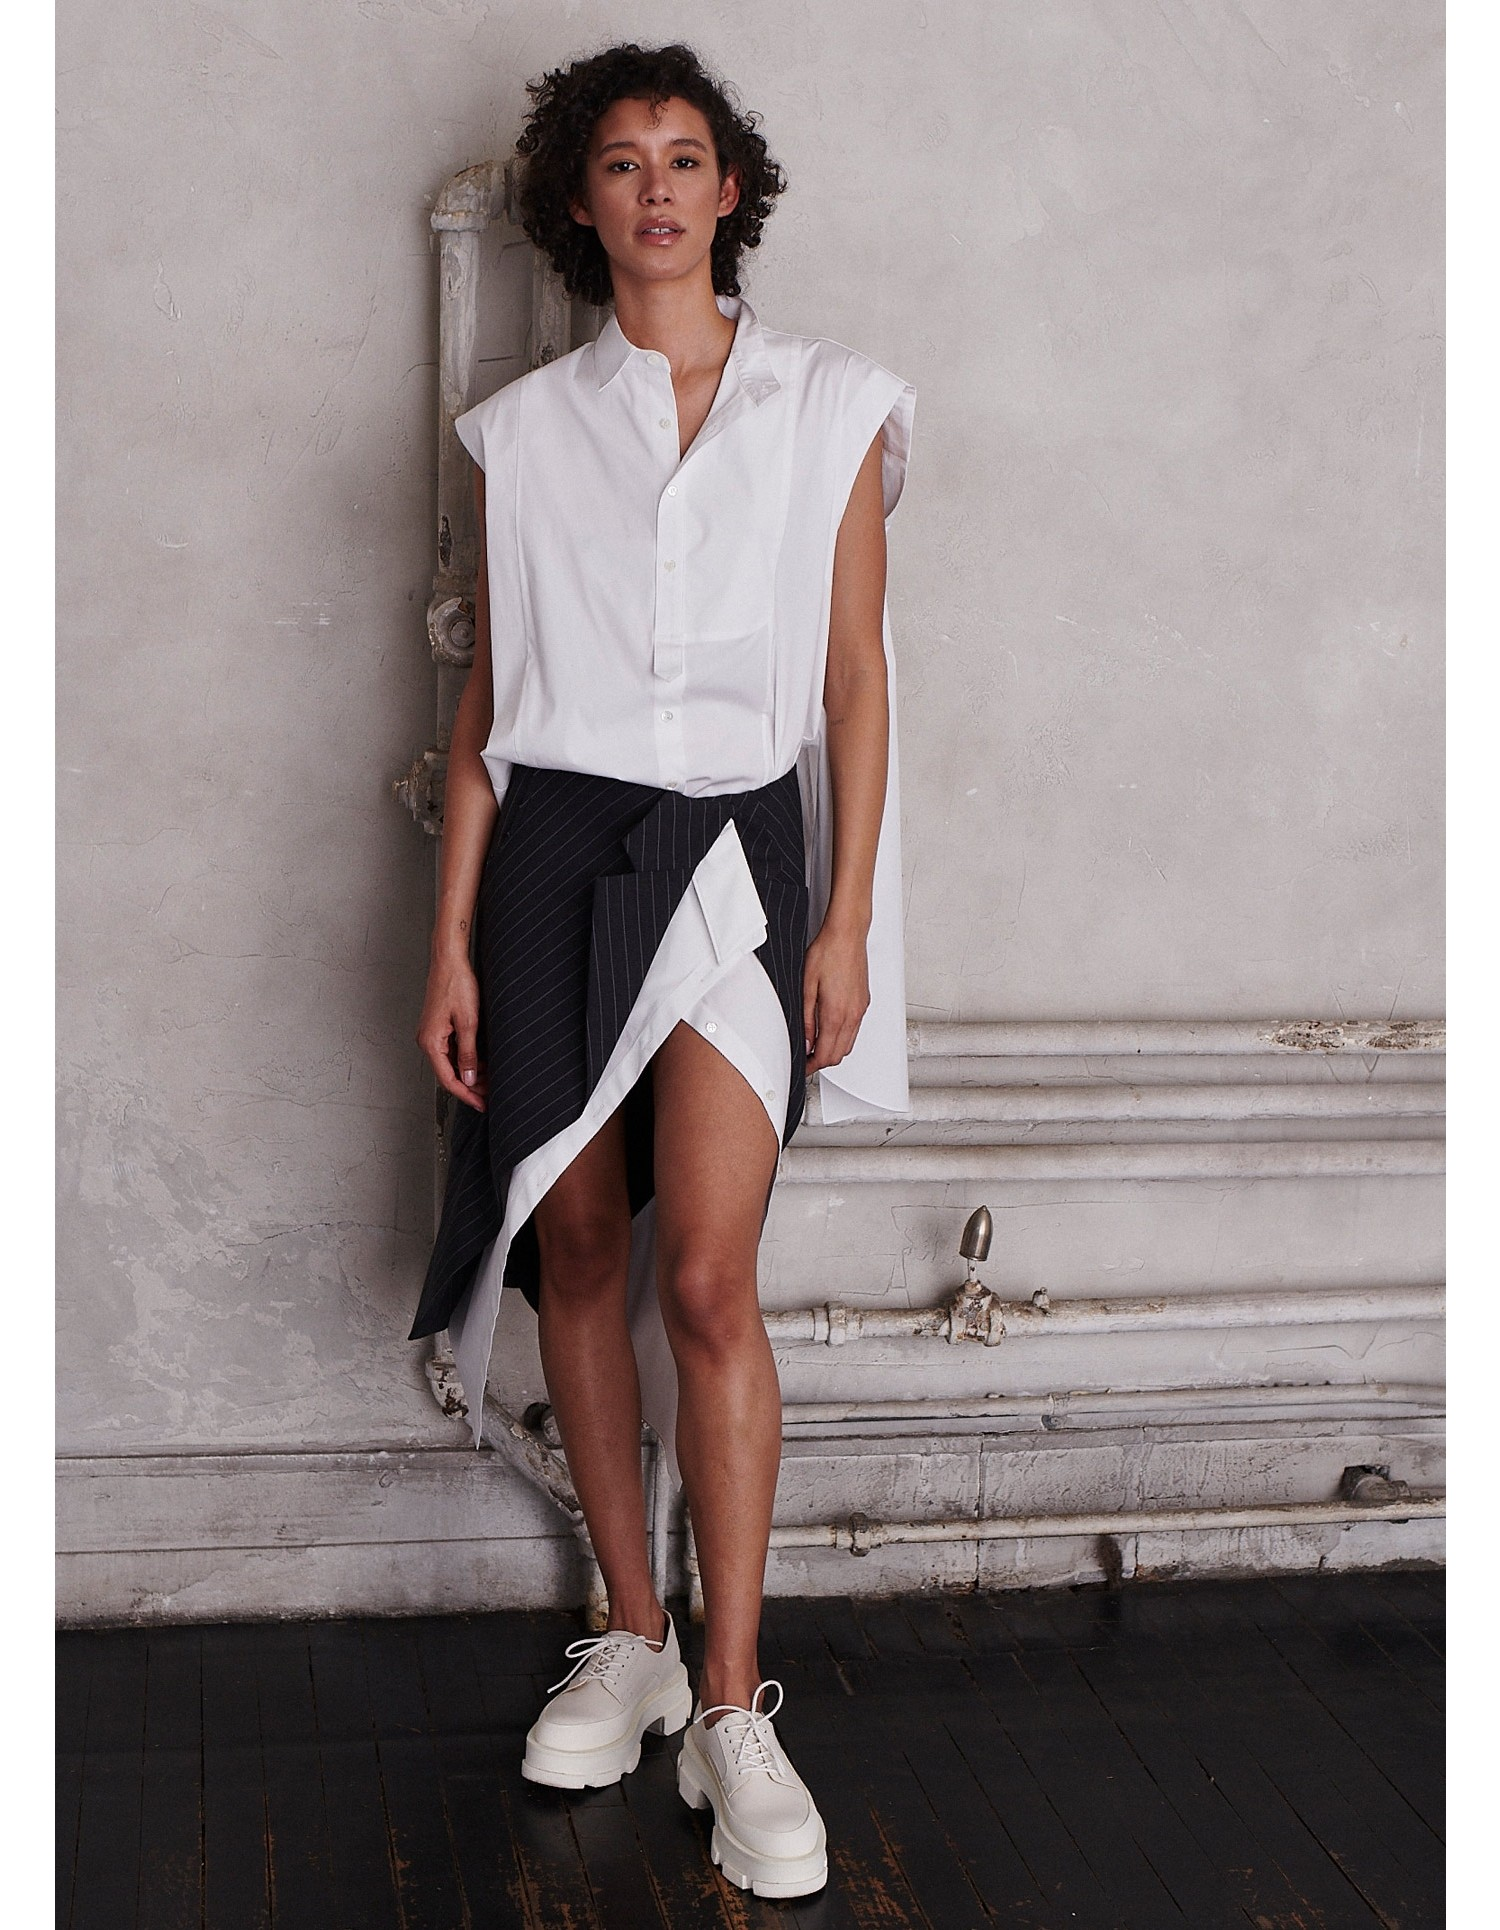 MONSE Half and Half Sleeveless Shirt in White on Model Front View